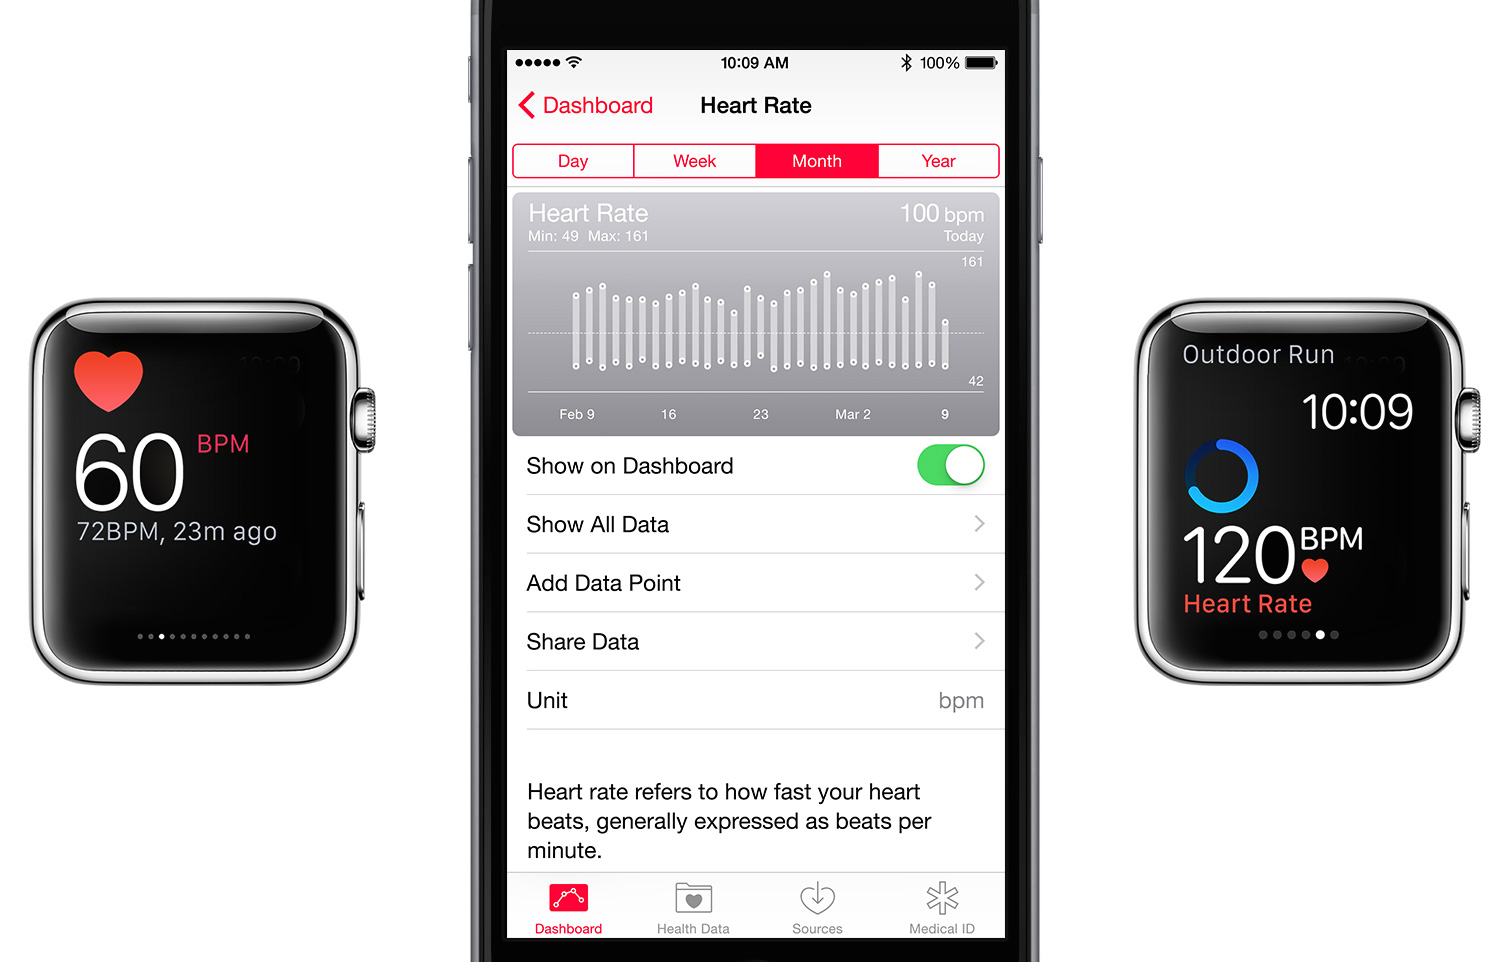 Apple Watch OS 1.0.1 Records Heart Rate Irregularly on Purpose